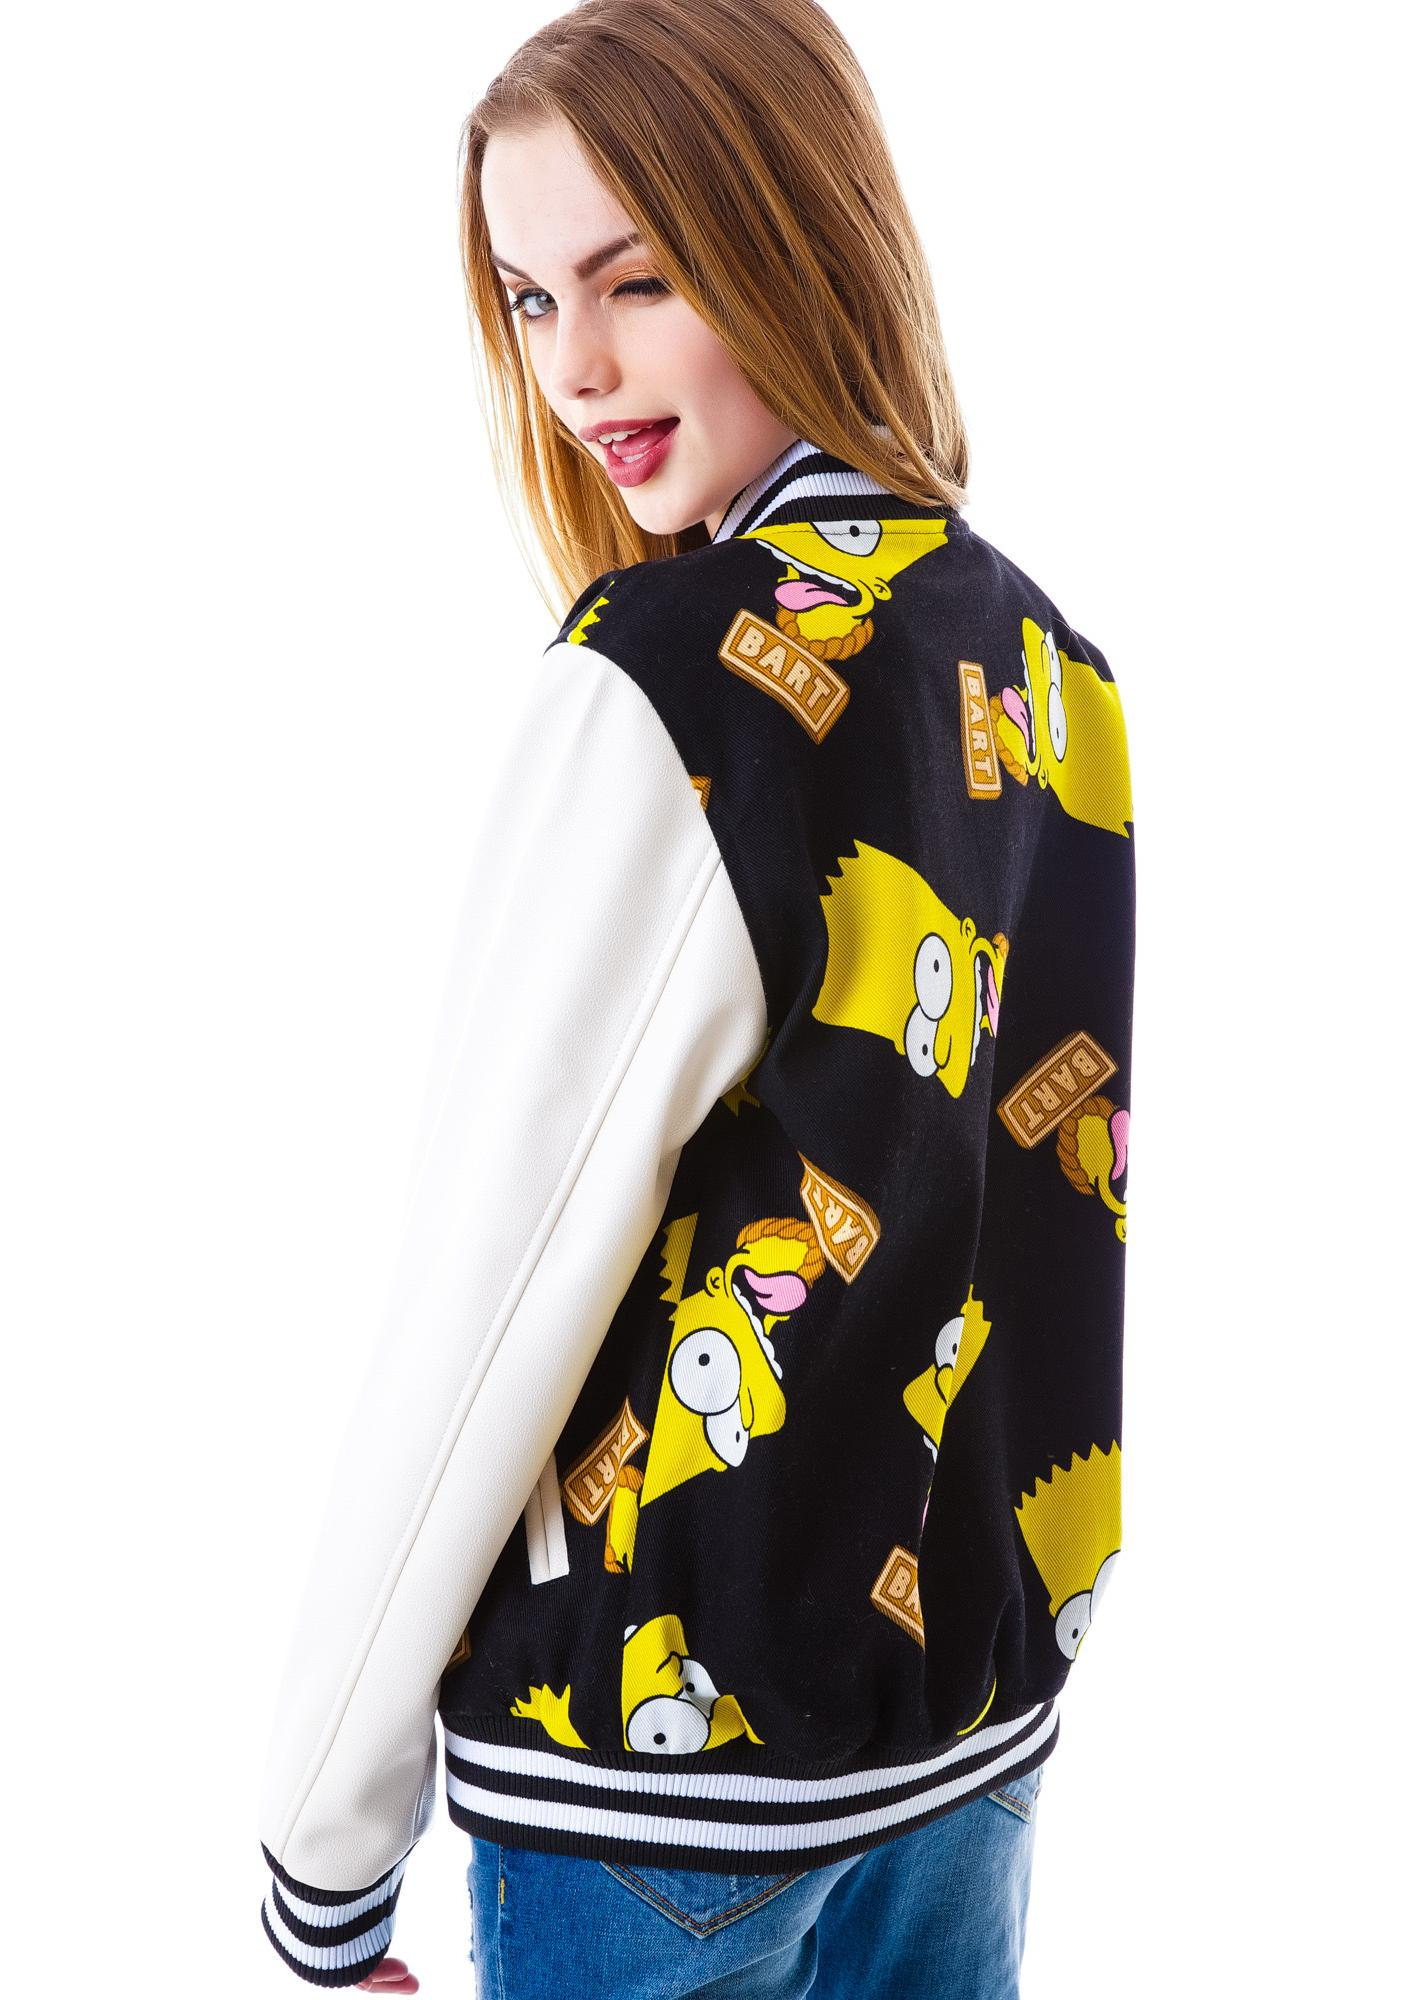 Joyrich Bart Face Jacket